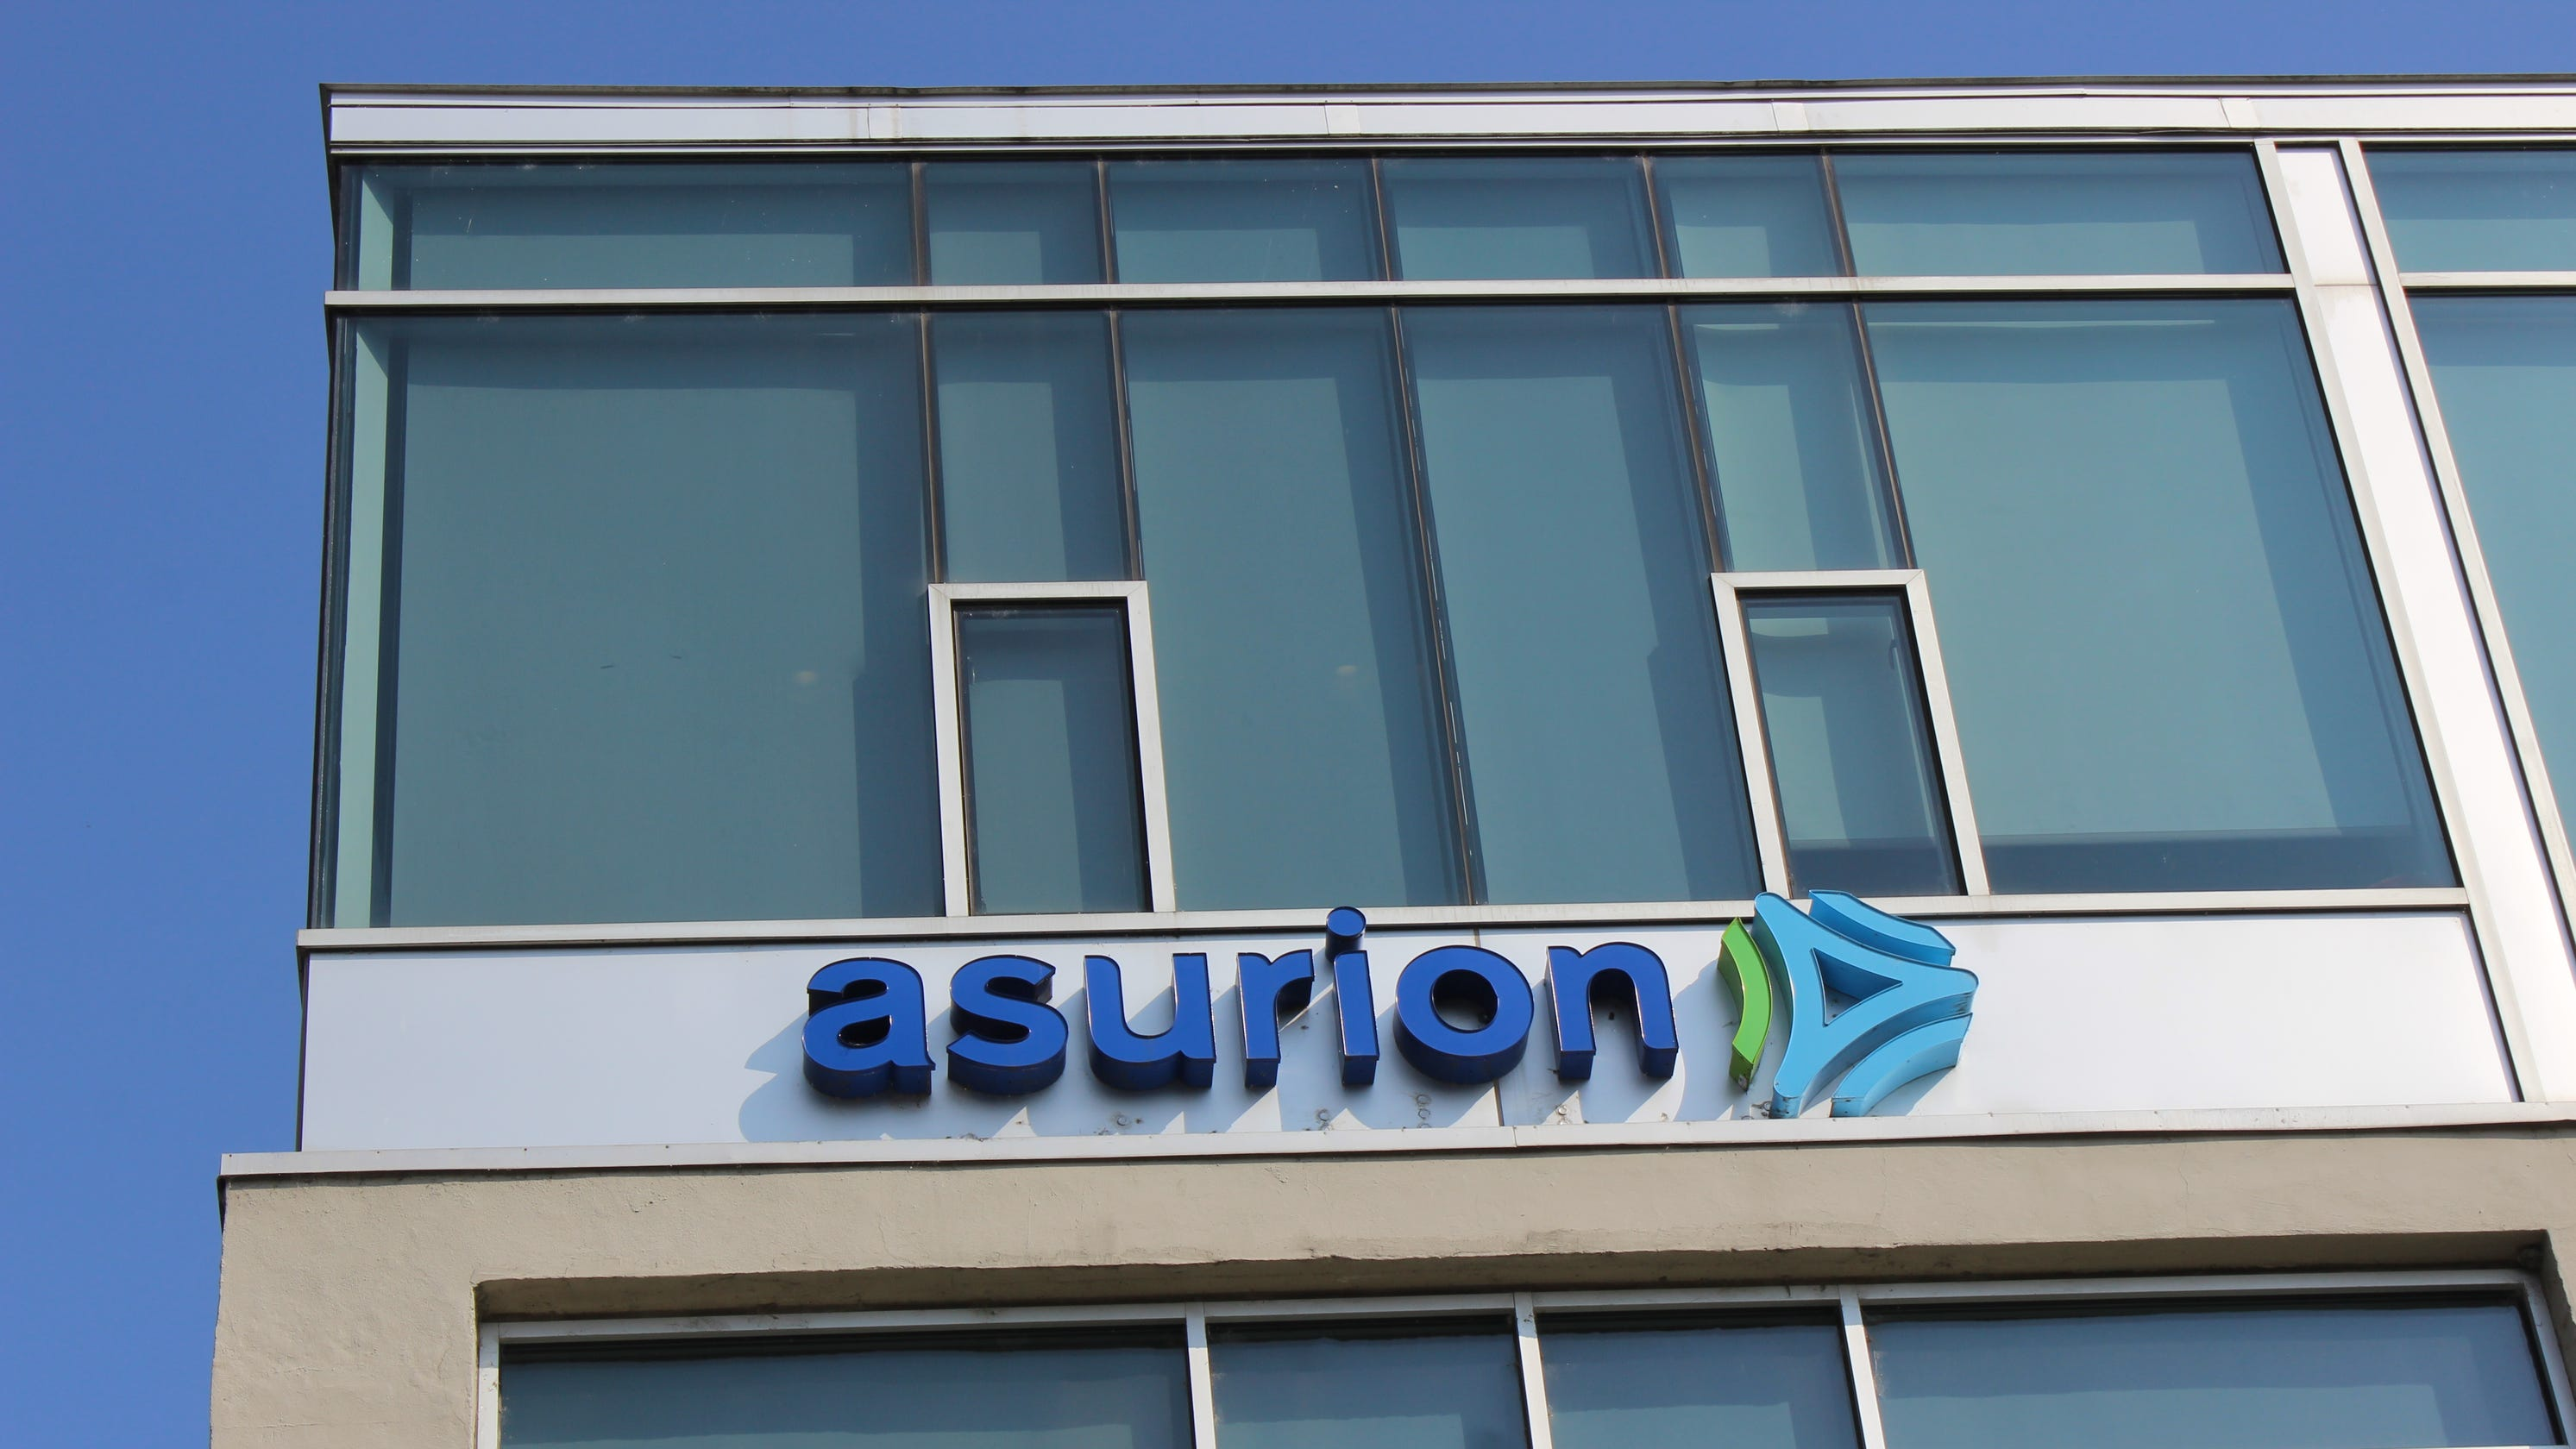 Asurion insurance paid $300,000 ransom after data breach